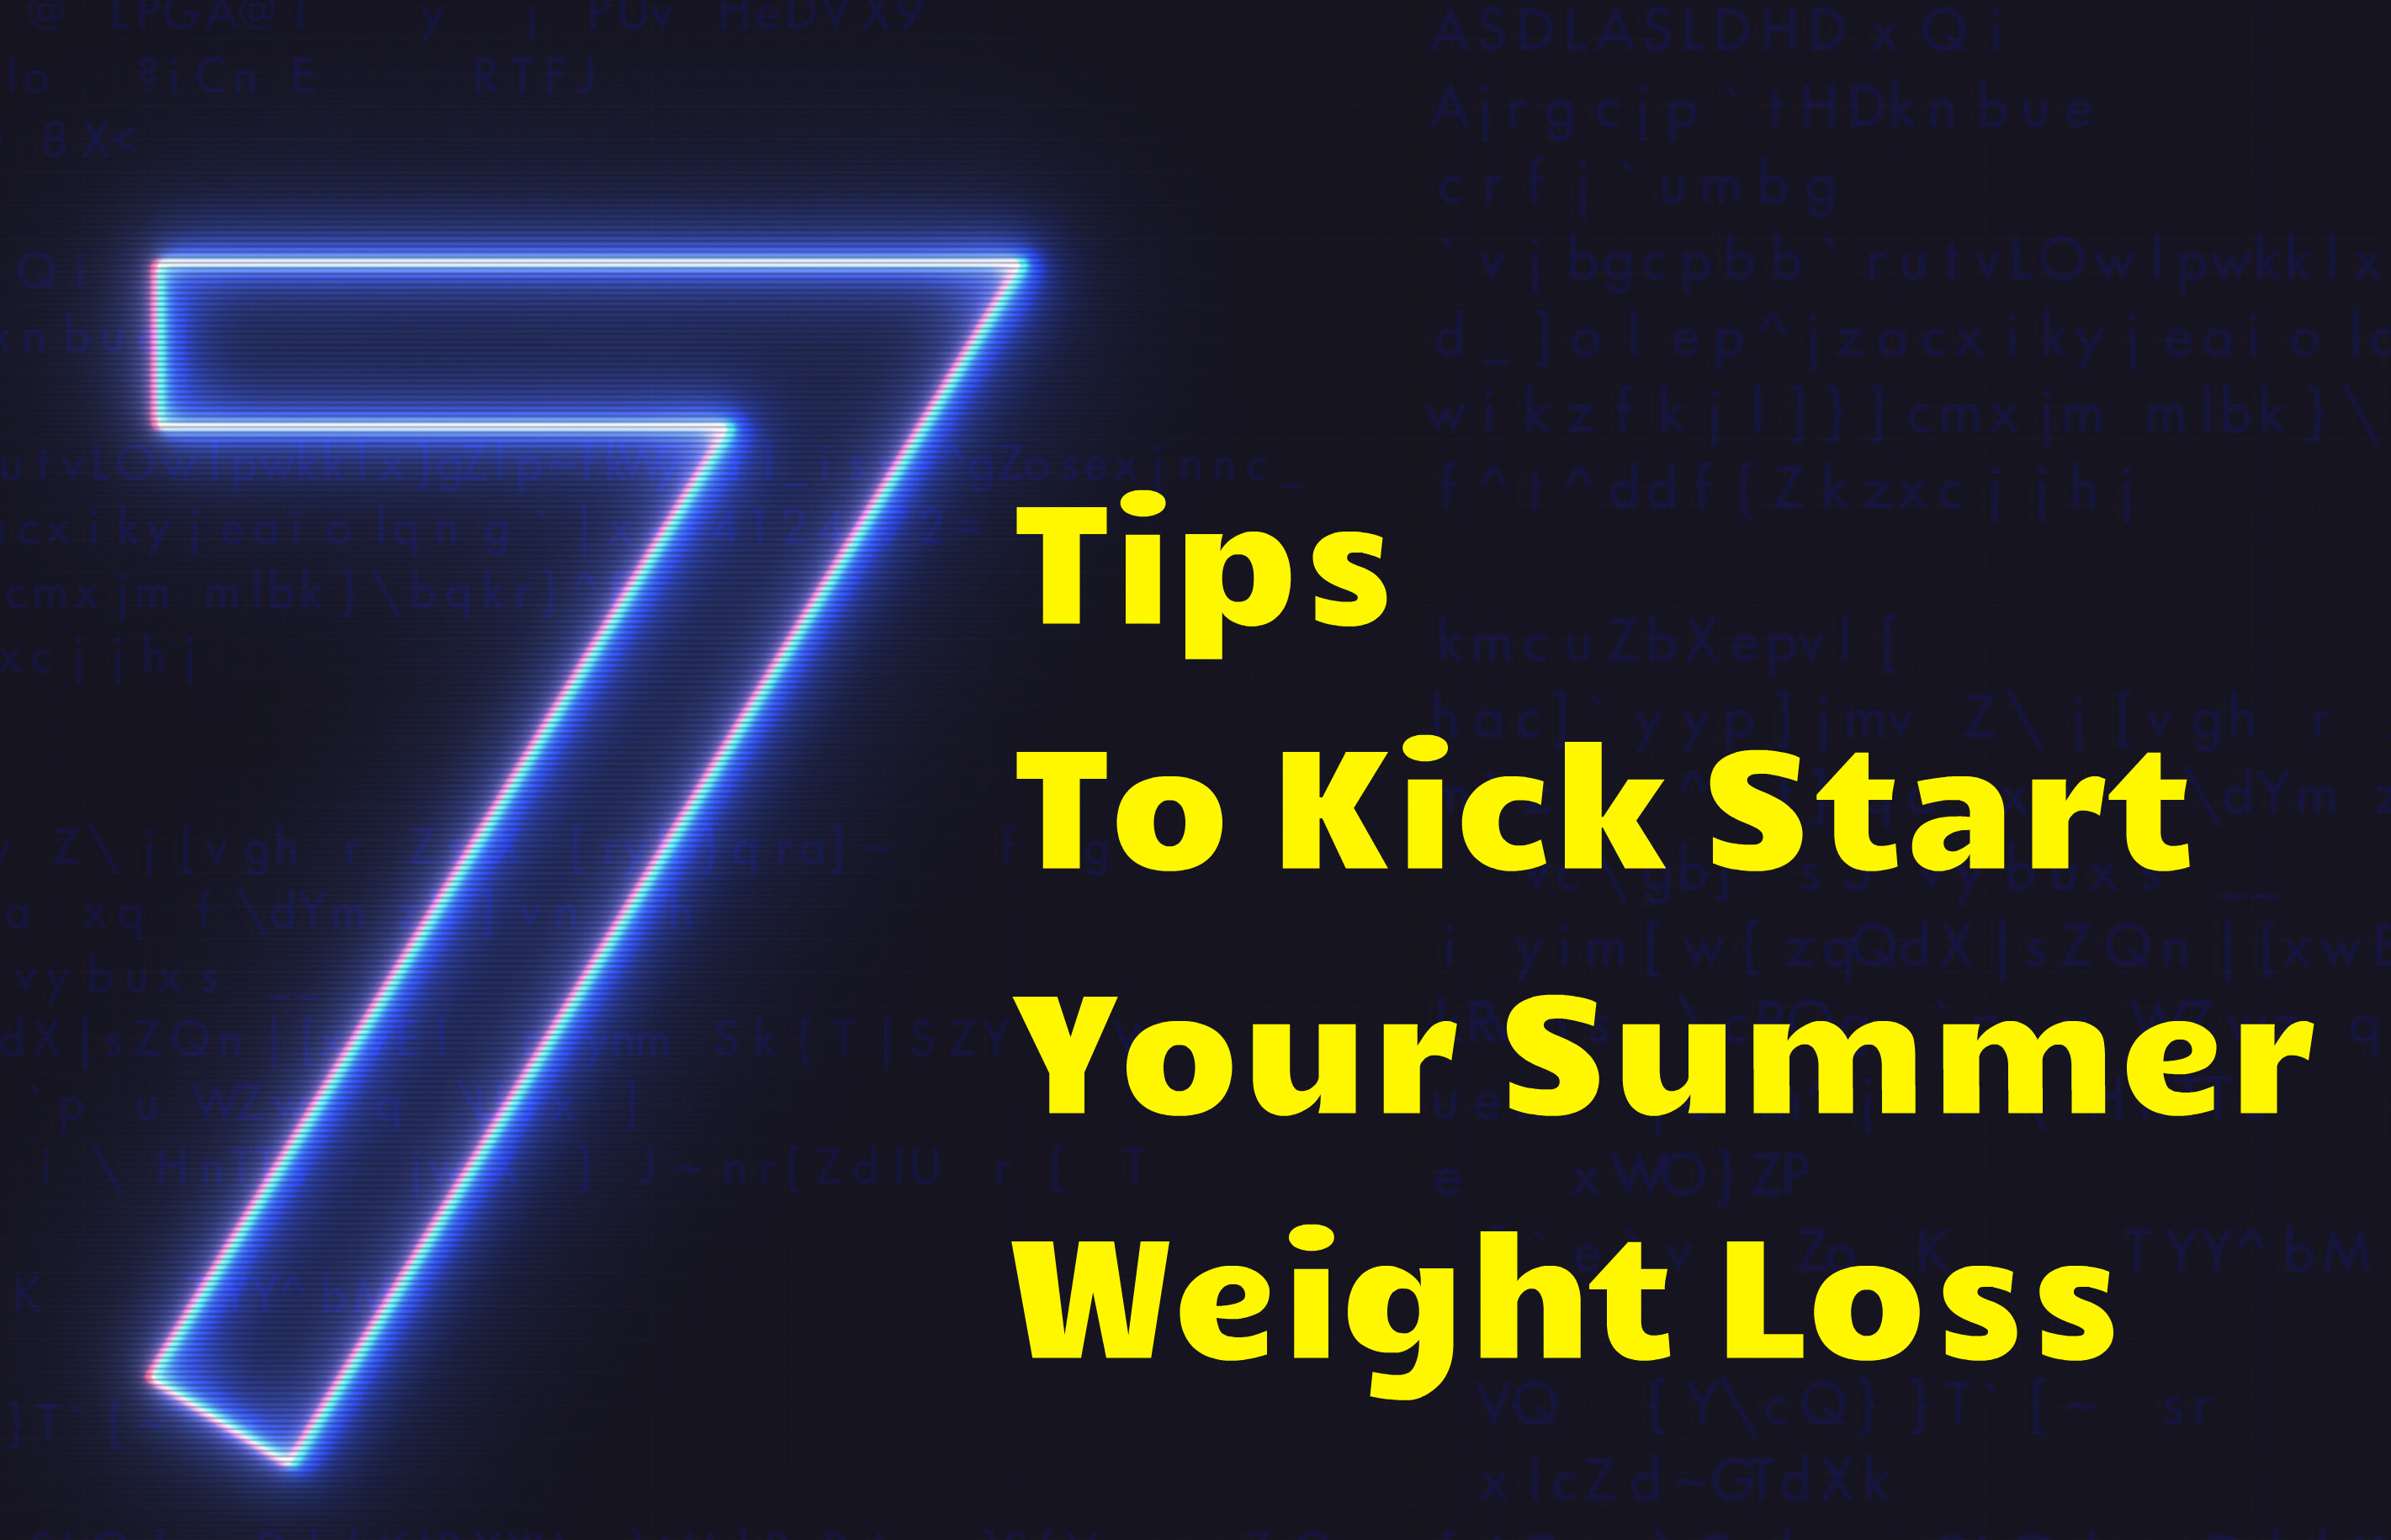 7 Tips To Kick Start Your Summer Weight Loss